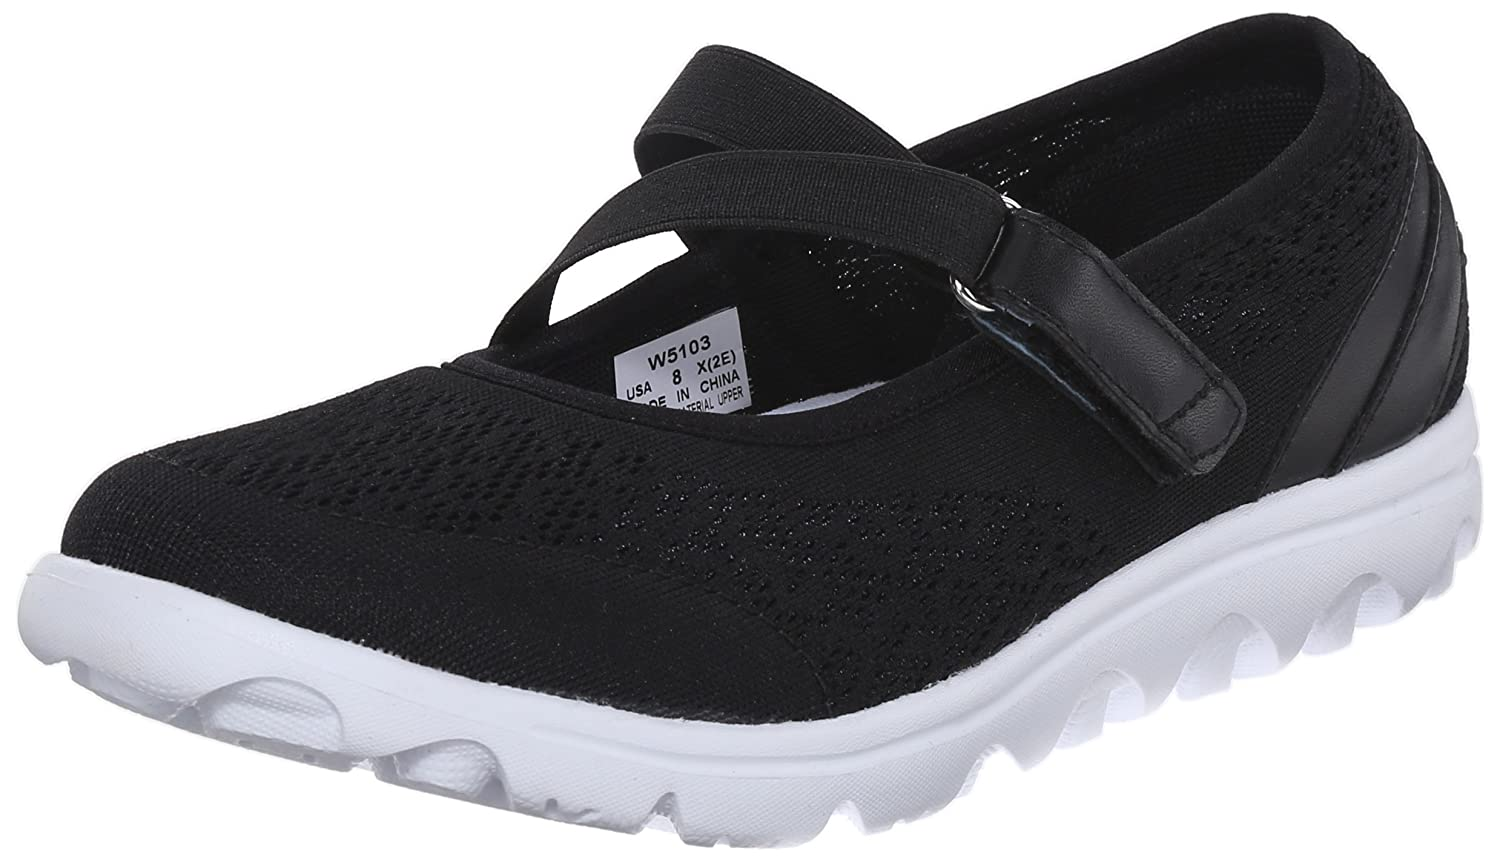 Propet Women's TravelActiv Mary W Jane Fashion Sneaker B0118F3N3Q 6 W Mary US|Black f4956f